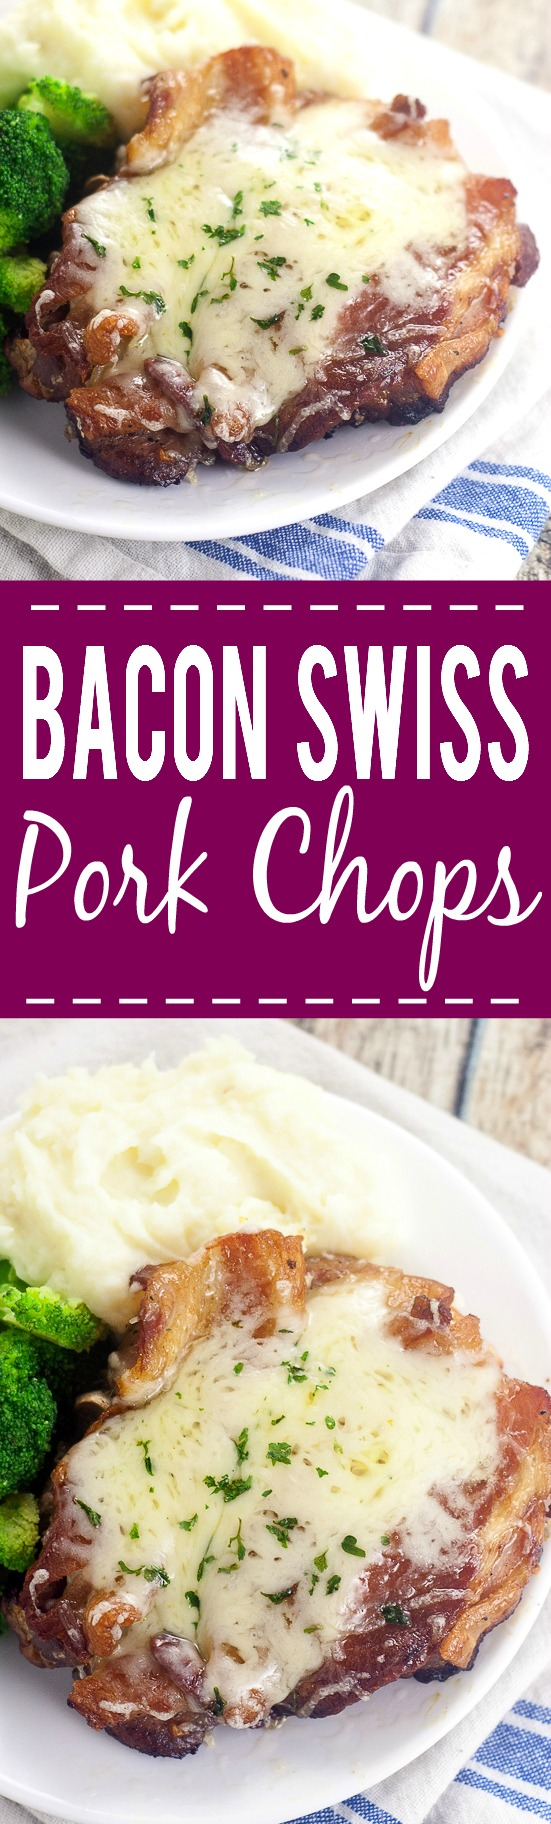 Bacon Swiss Pork Chops Recipe -Juicy pork chops topped with bacon and cheese. This 5 ingredient Bacon Swiss Pork Chops recipe is quick and easy and an instant family favorite! Love this easy family dinner recipe! Can't go wrong with bacon!